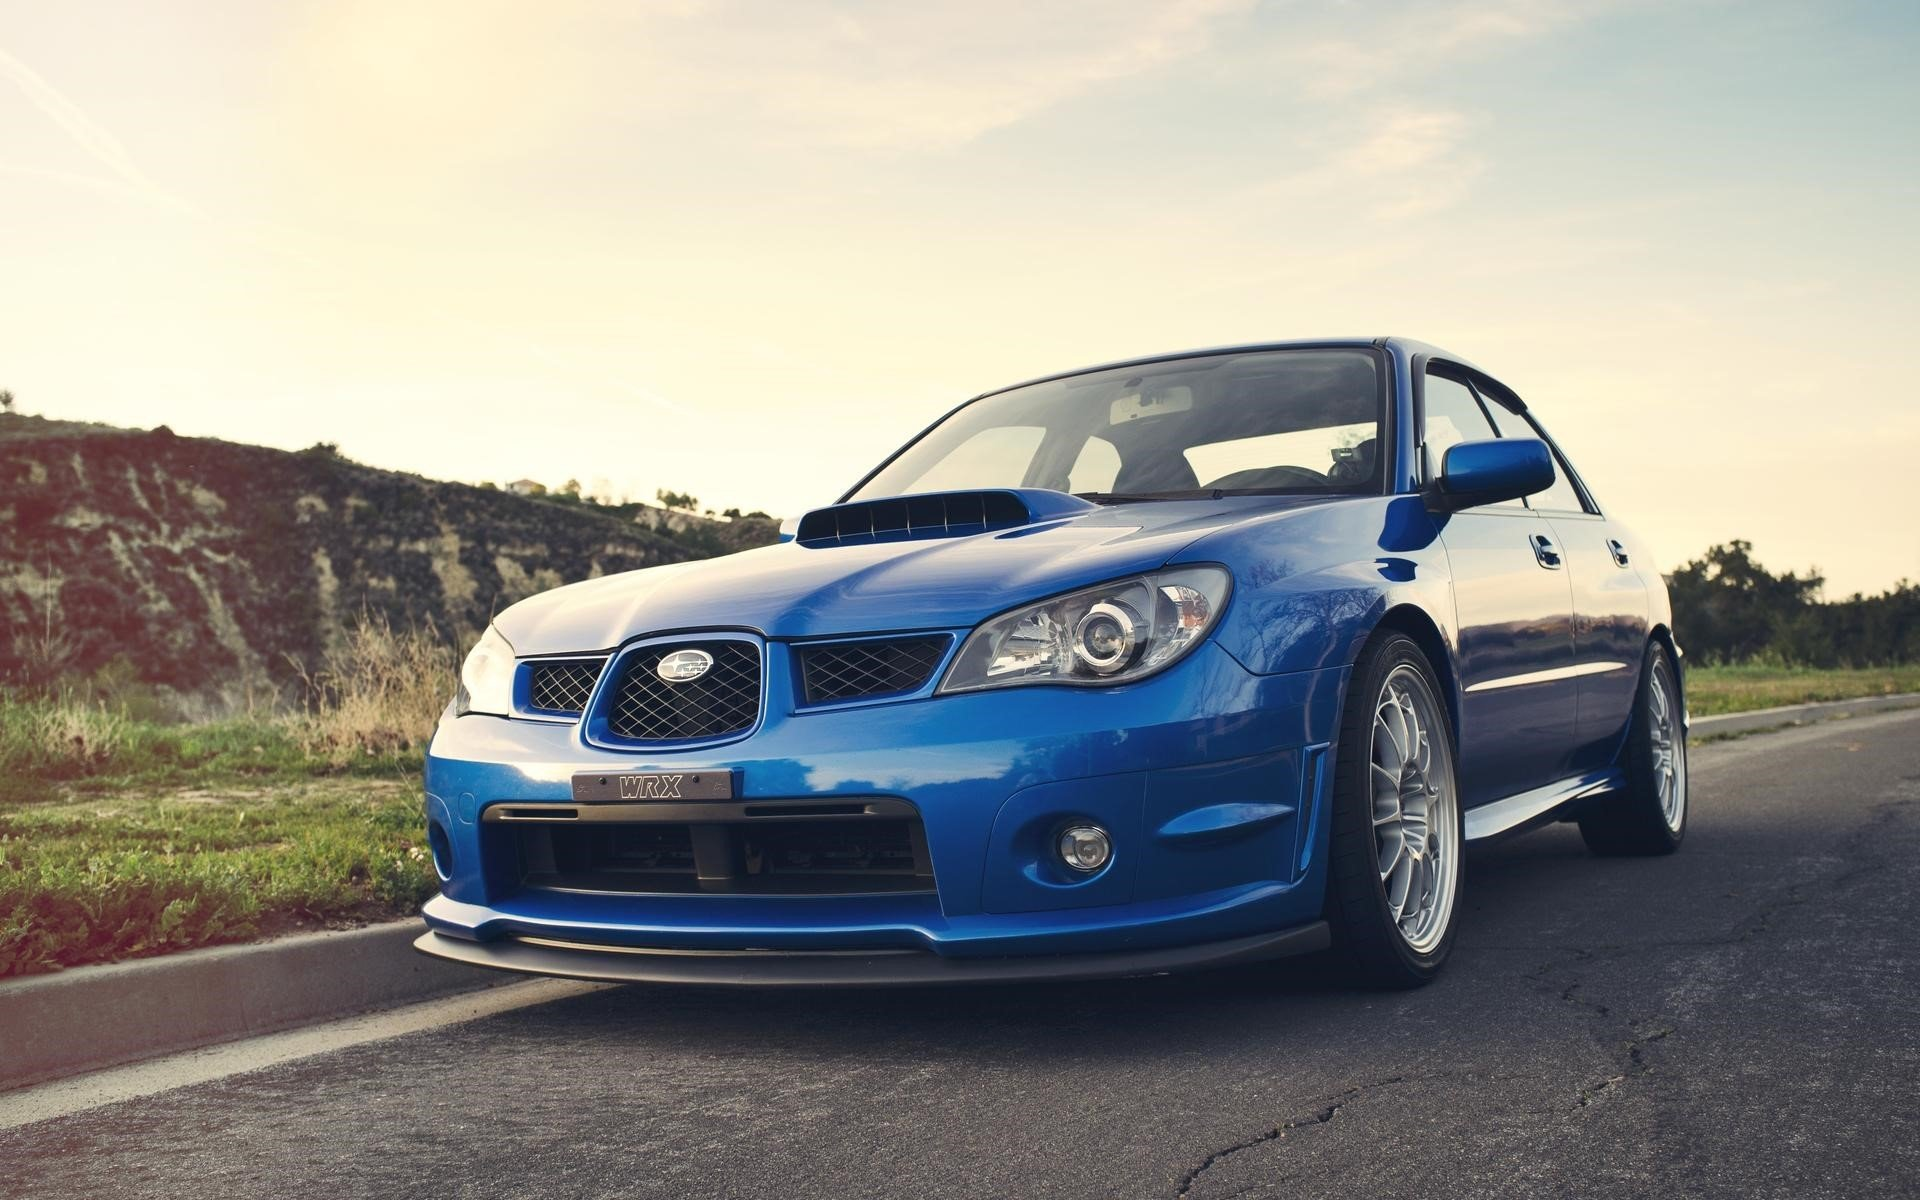 Subaru Impreza WRX Blue Car Wallpapers HD Wallpapers 1920x1200